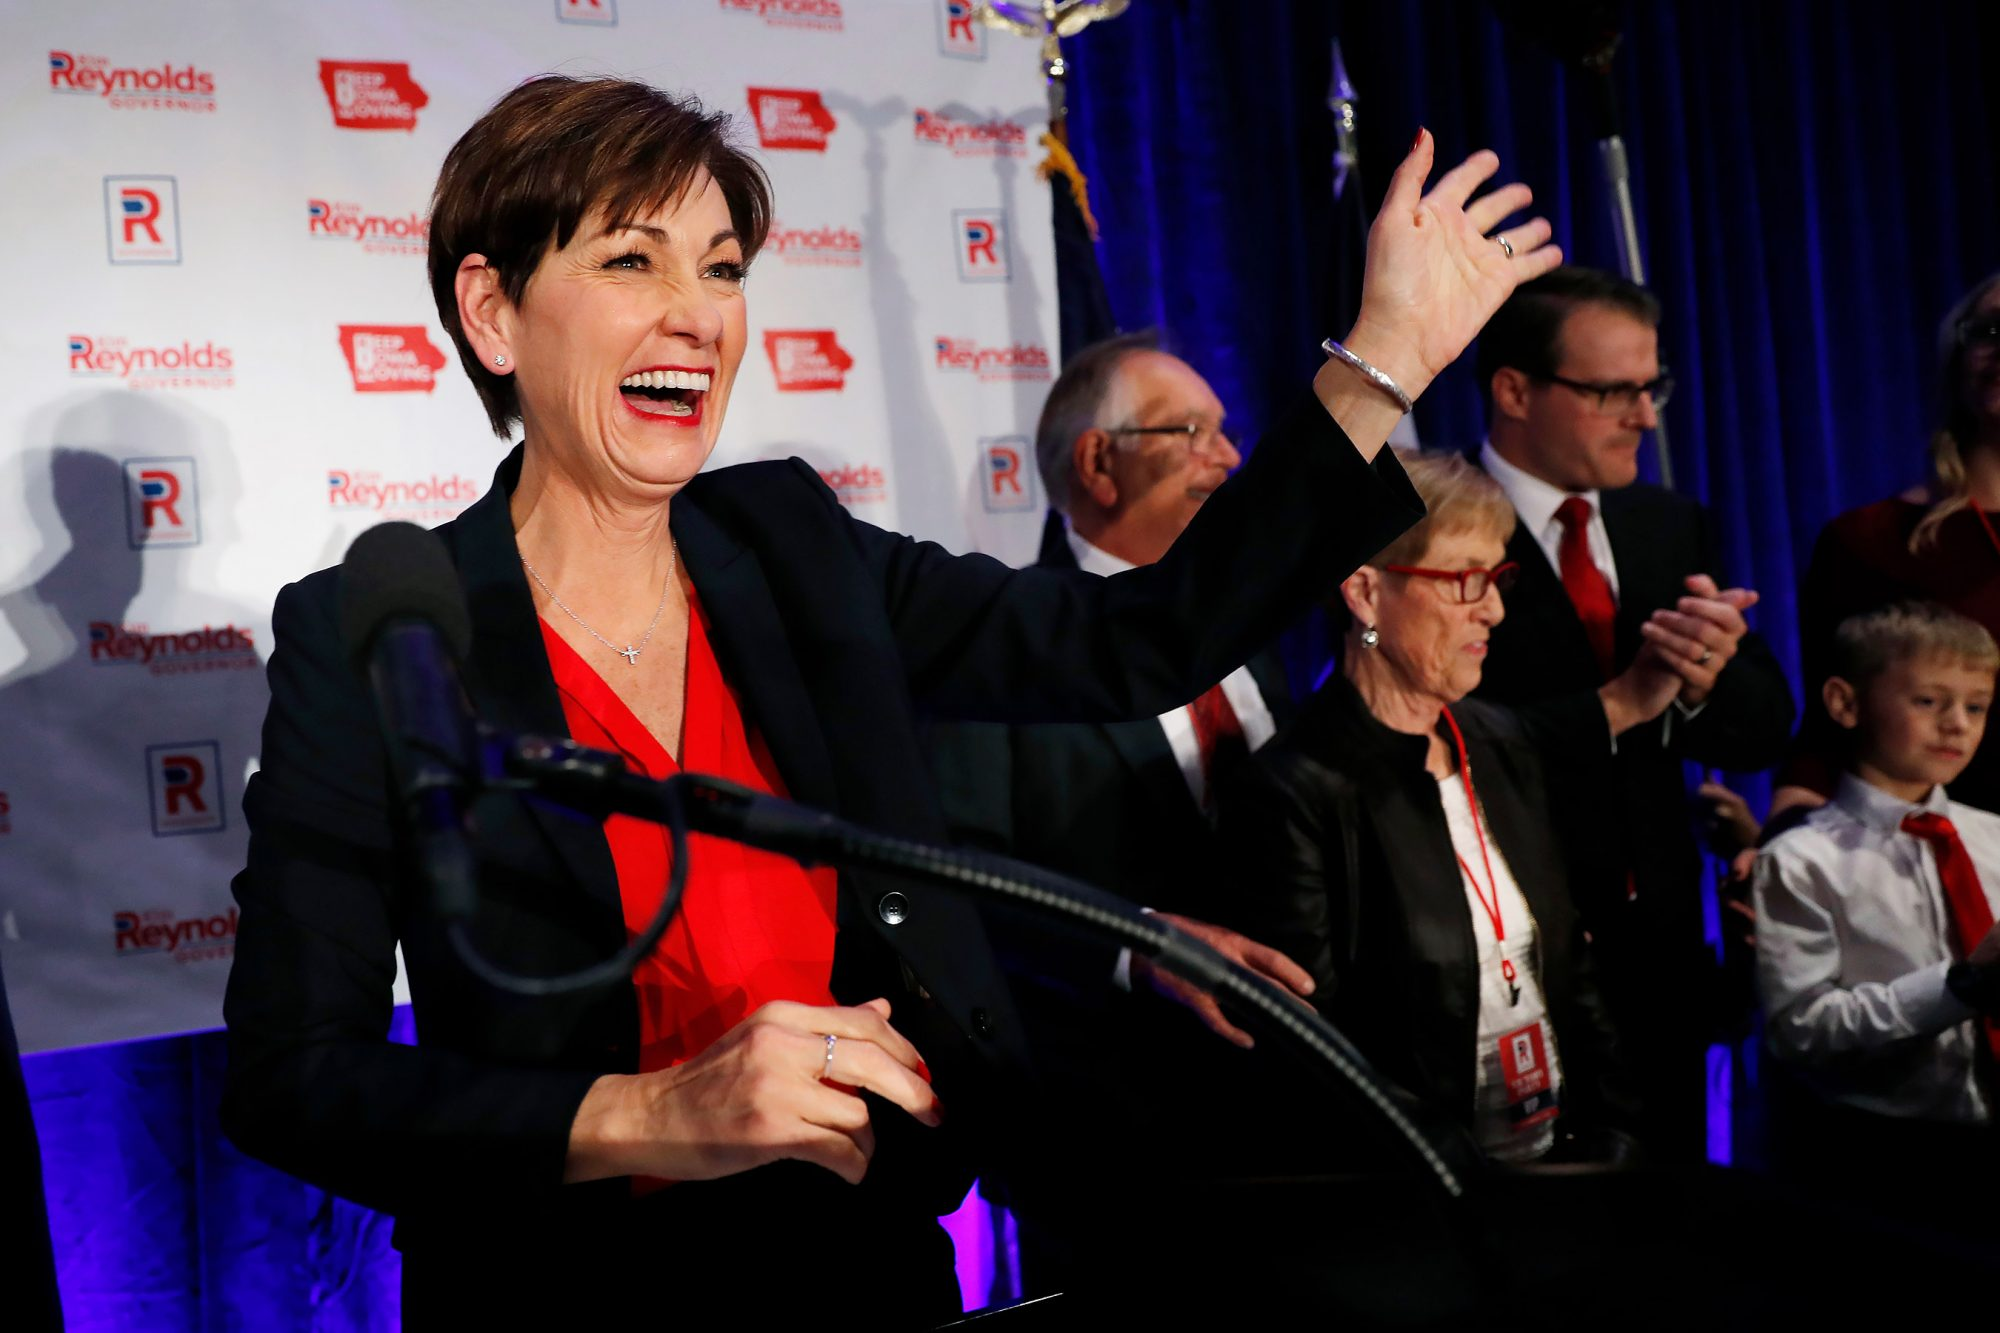 Election 2018 Governor Reynolds Iowa, Des Moines, USA - 07 Nov 2018